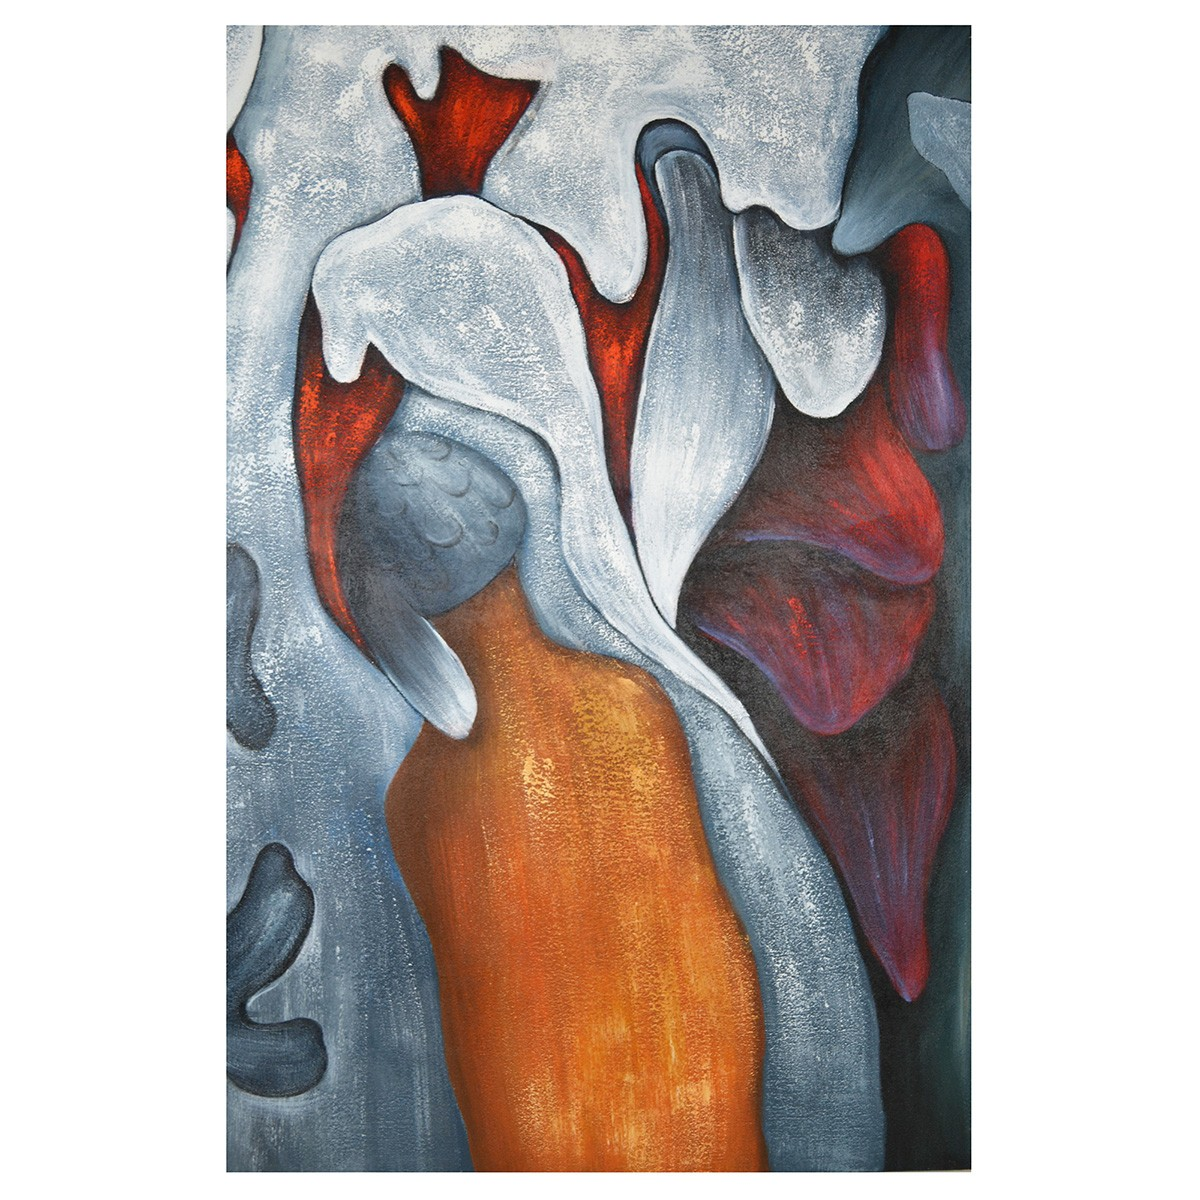 Streched Canvas Abstract Painting Wall Art, Lava, 90cm